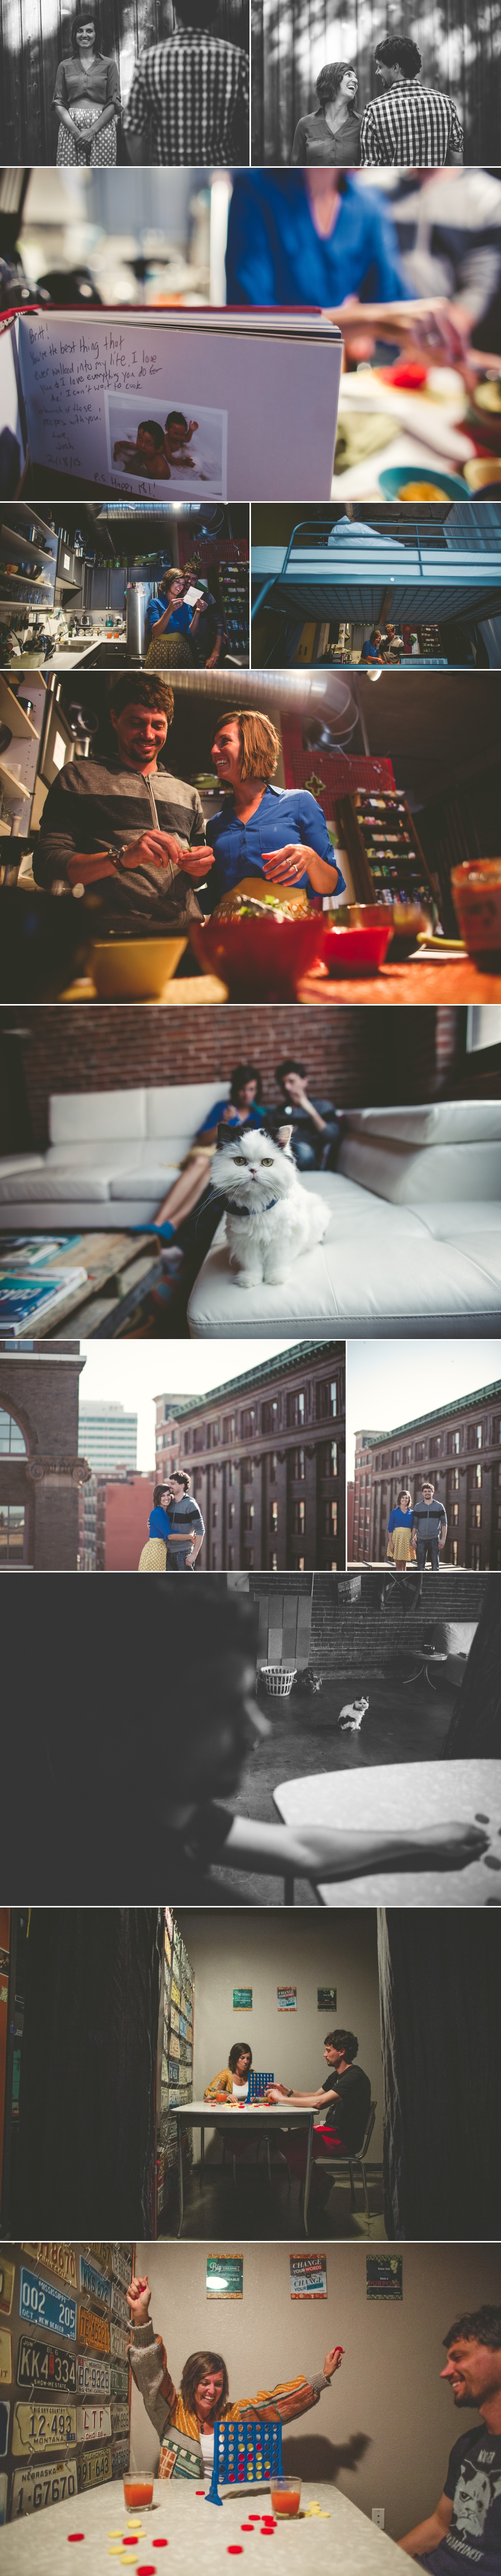 jason_domingues_photography_best_kansas_city_photographer_kc_creative_wedding_engagement_session_documentary_portrait_social_change_nation_hostel_brittain_kovac_experienced_2